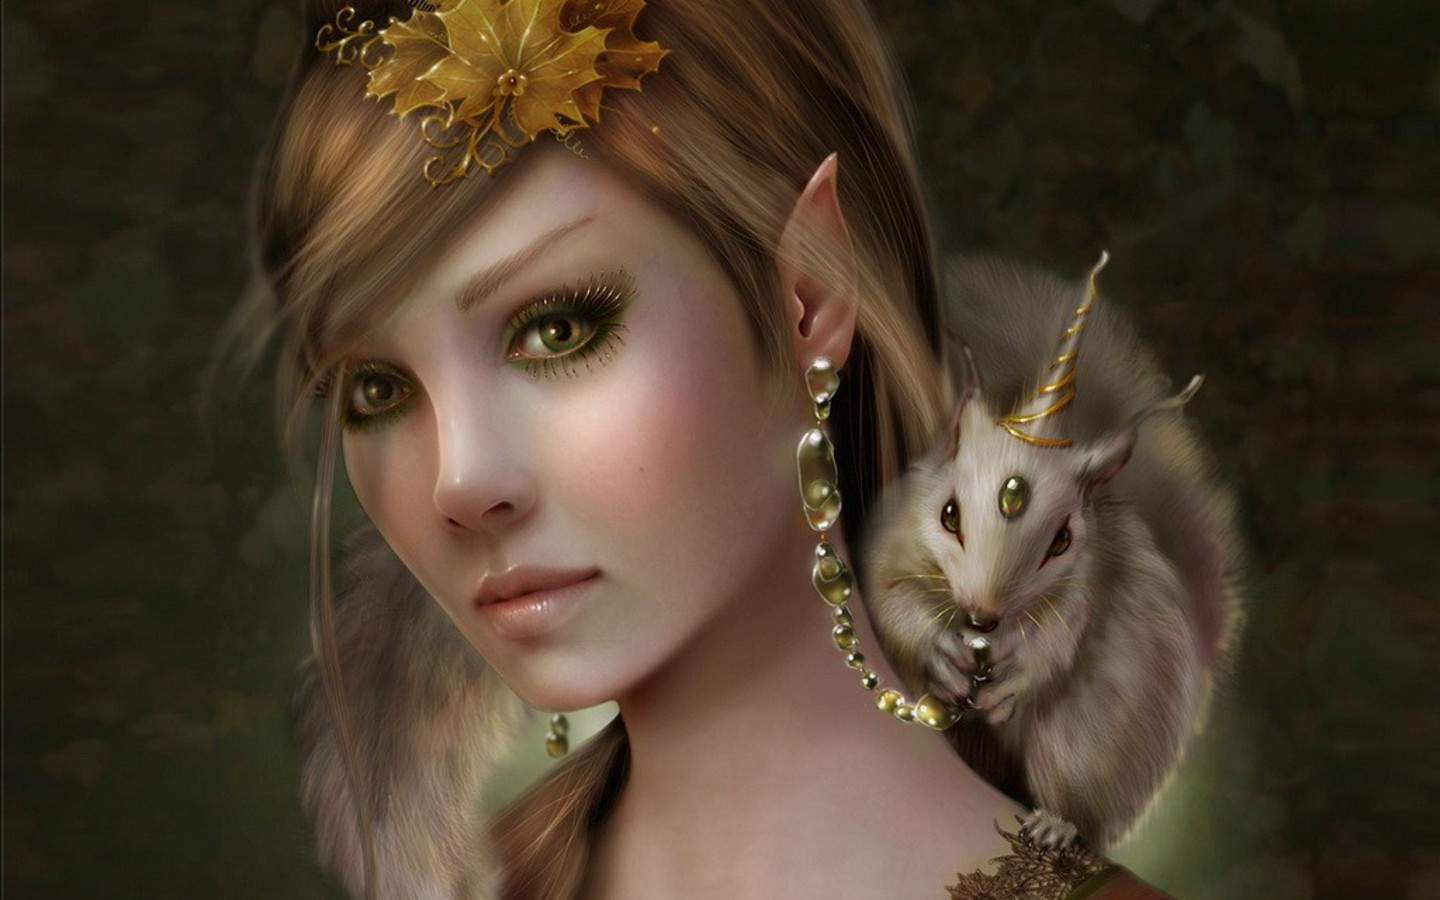 hq face fantasy women art wallpaper 6 fantasy women art wallpaper 4